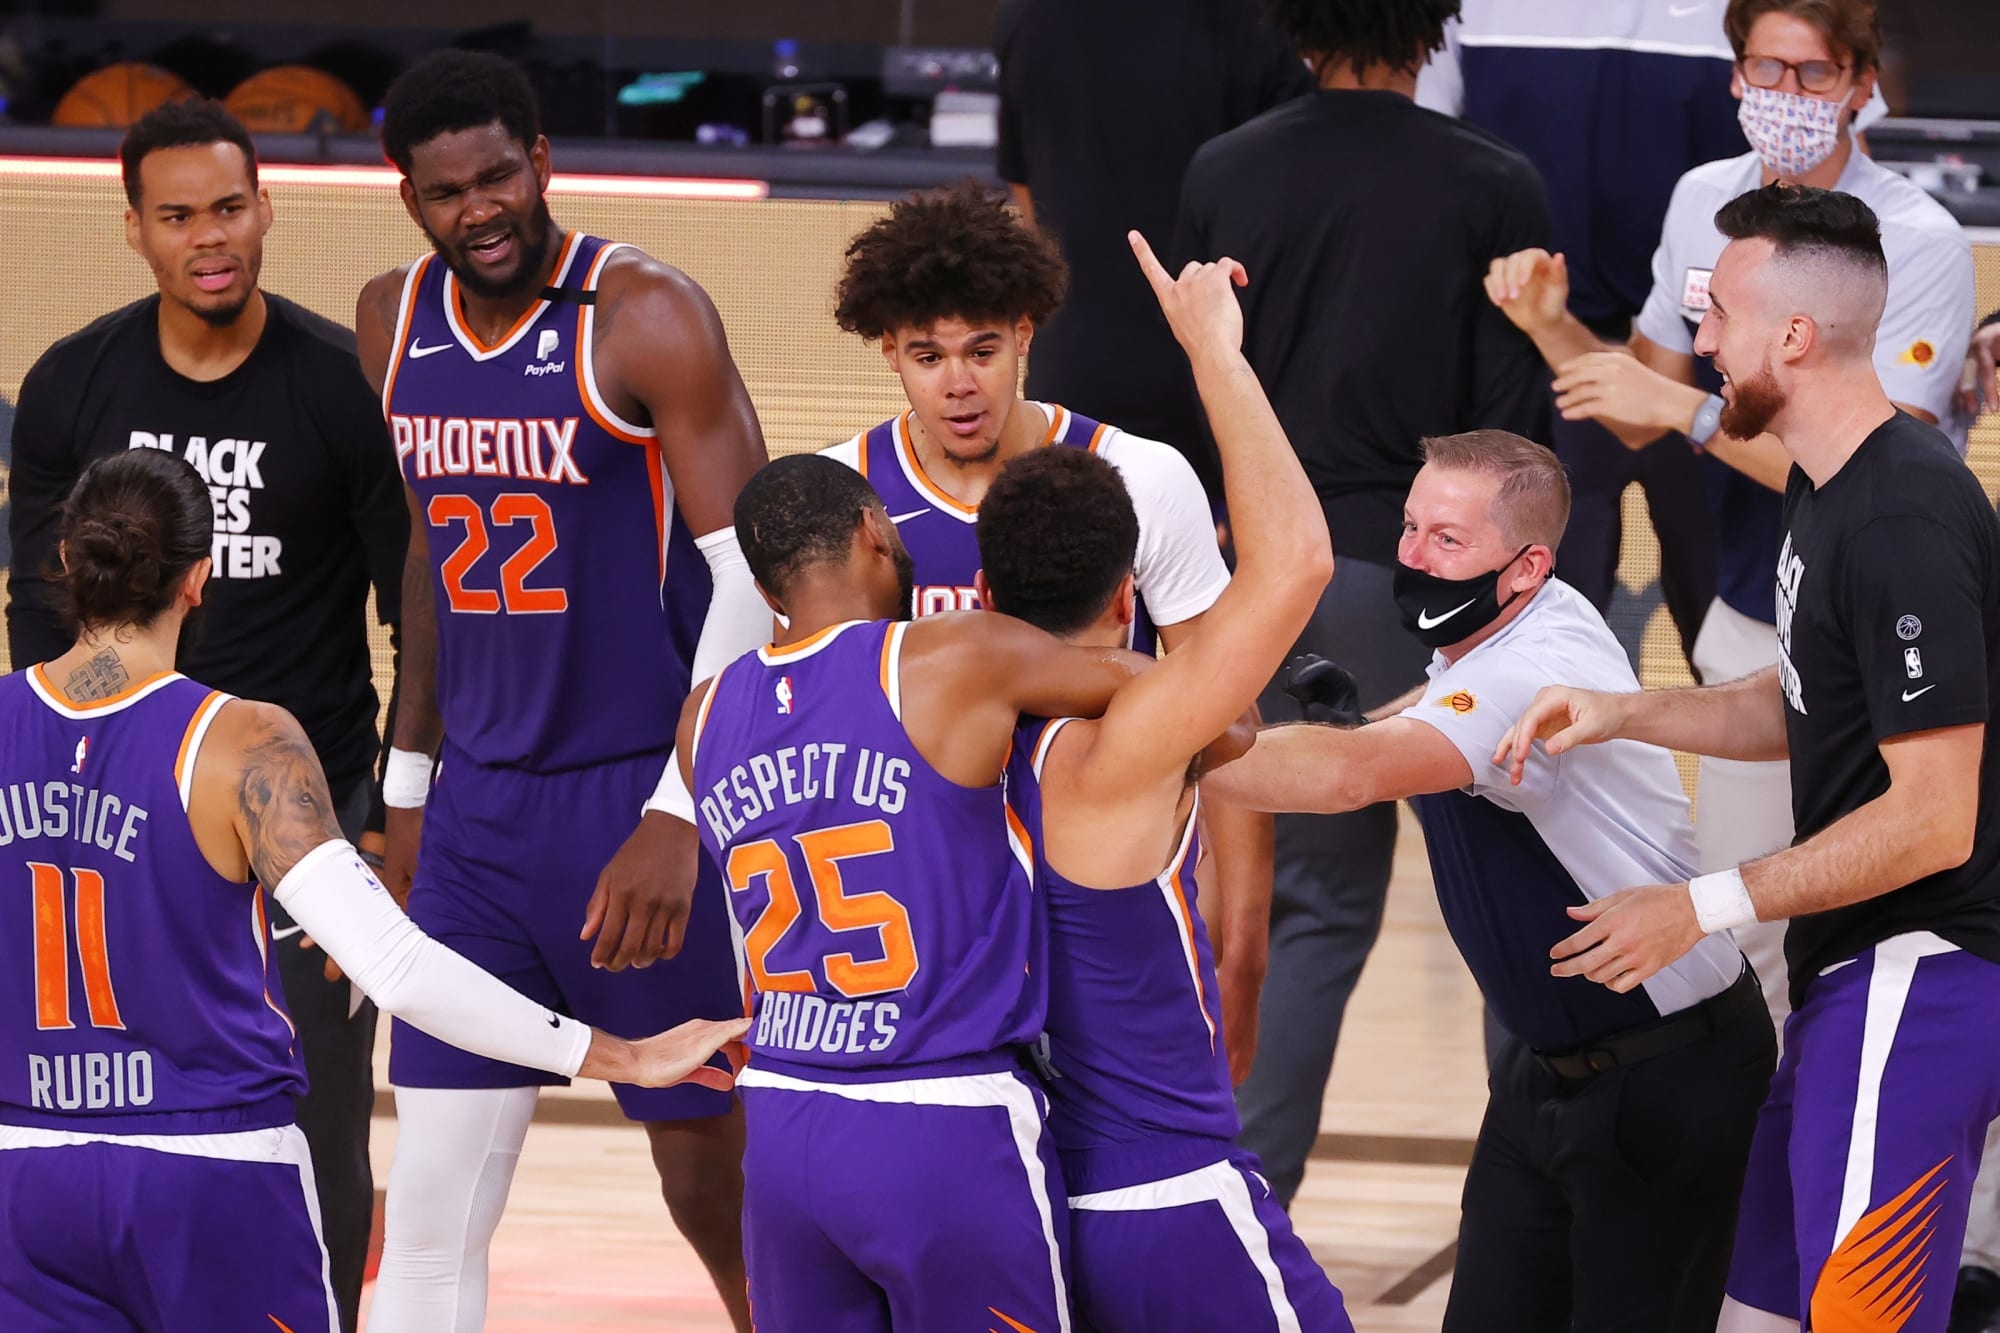 Phoenix Suns fans can be proud of their team this season